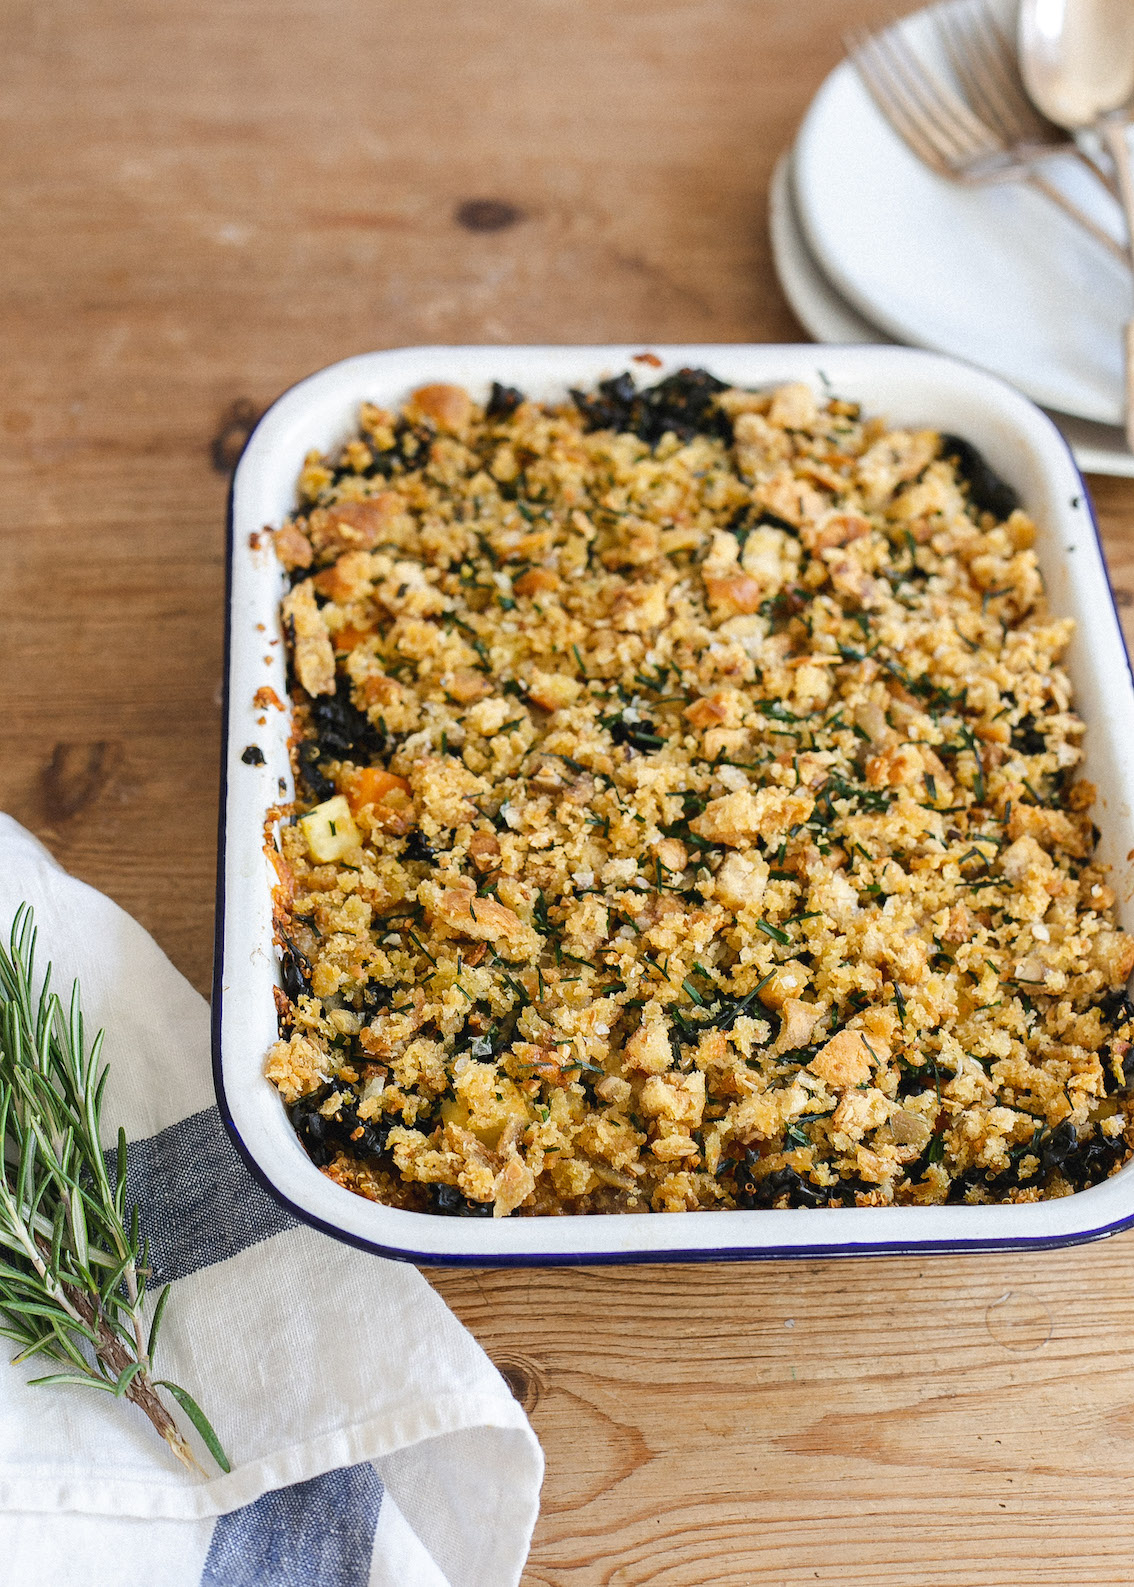 FODMAP friendly Autumn quinoa and vegetable bake